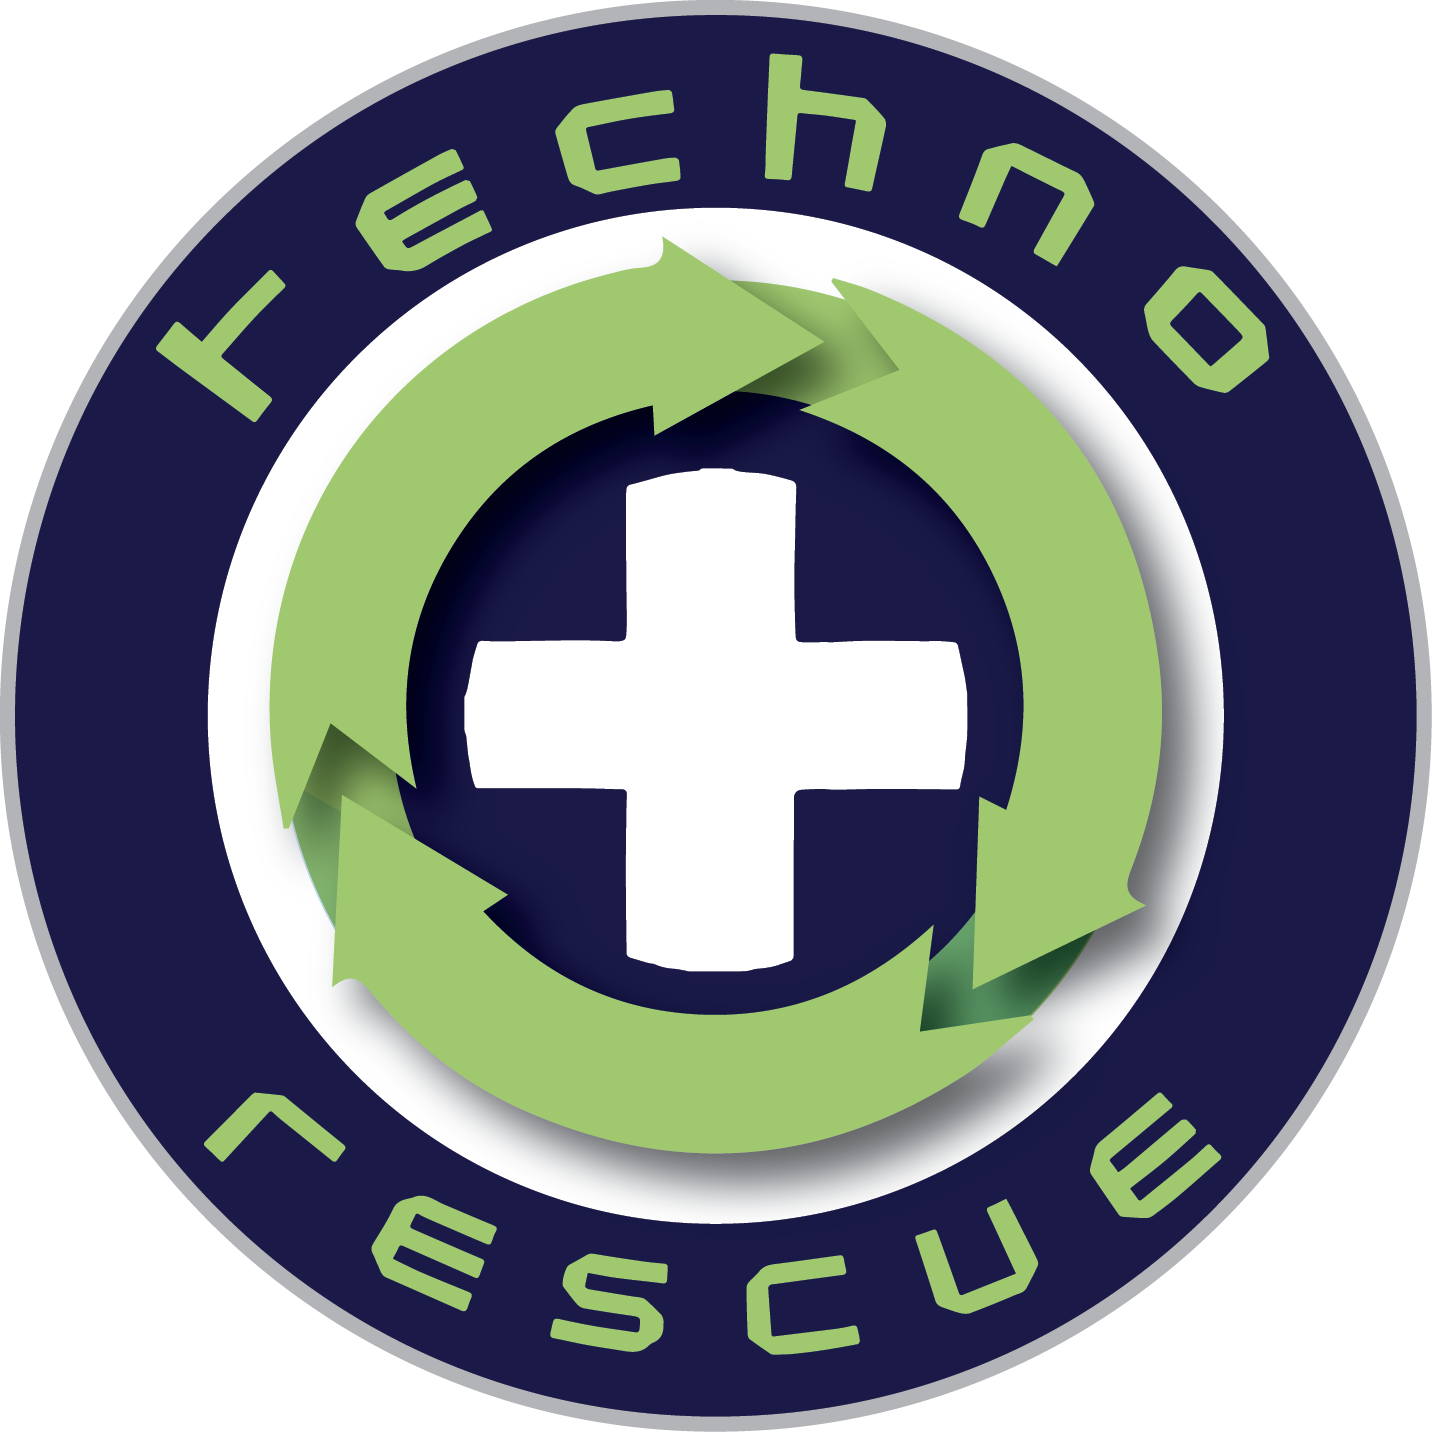 Buysell physical therapy equipment - Techno Rescue Llc